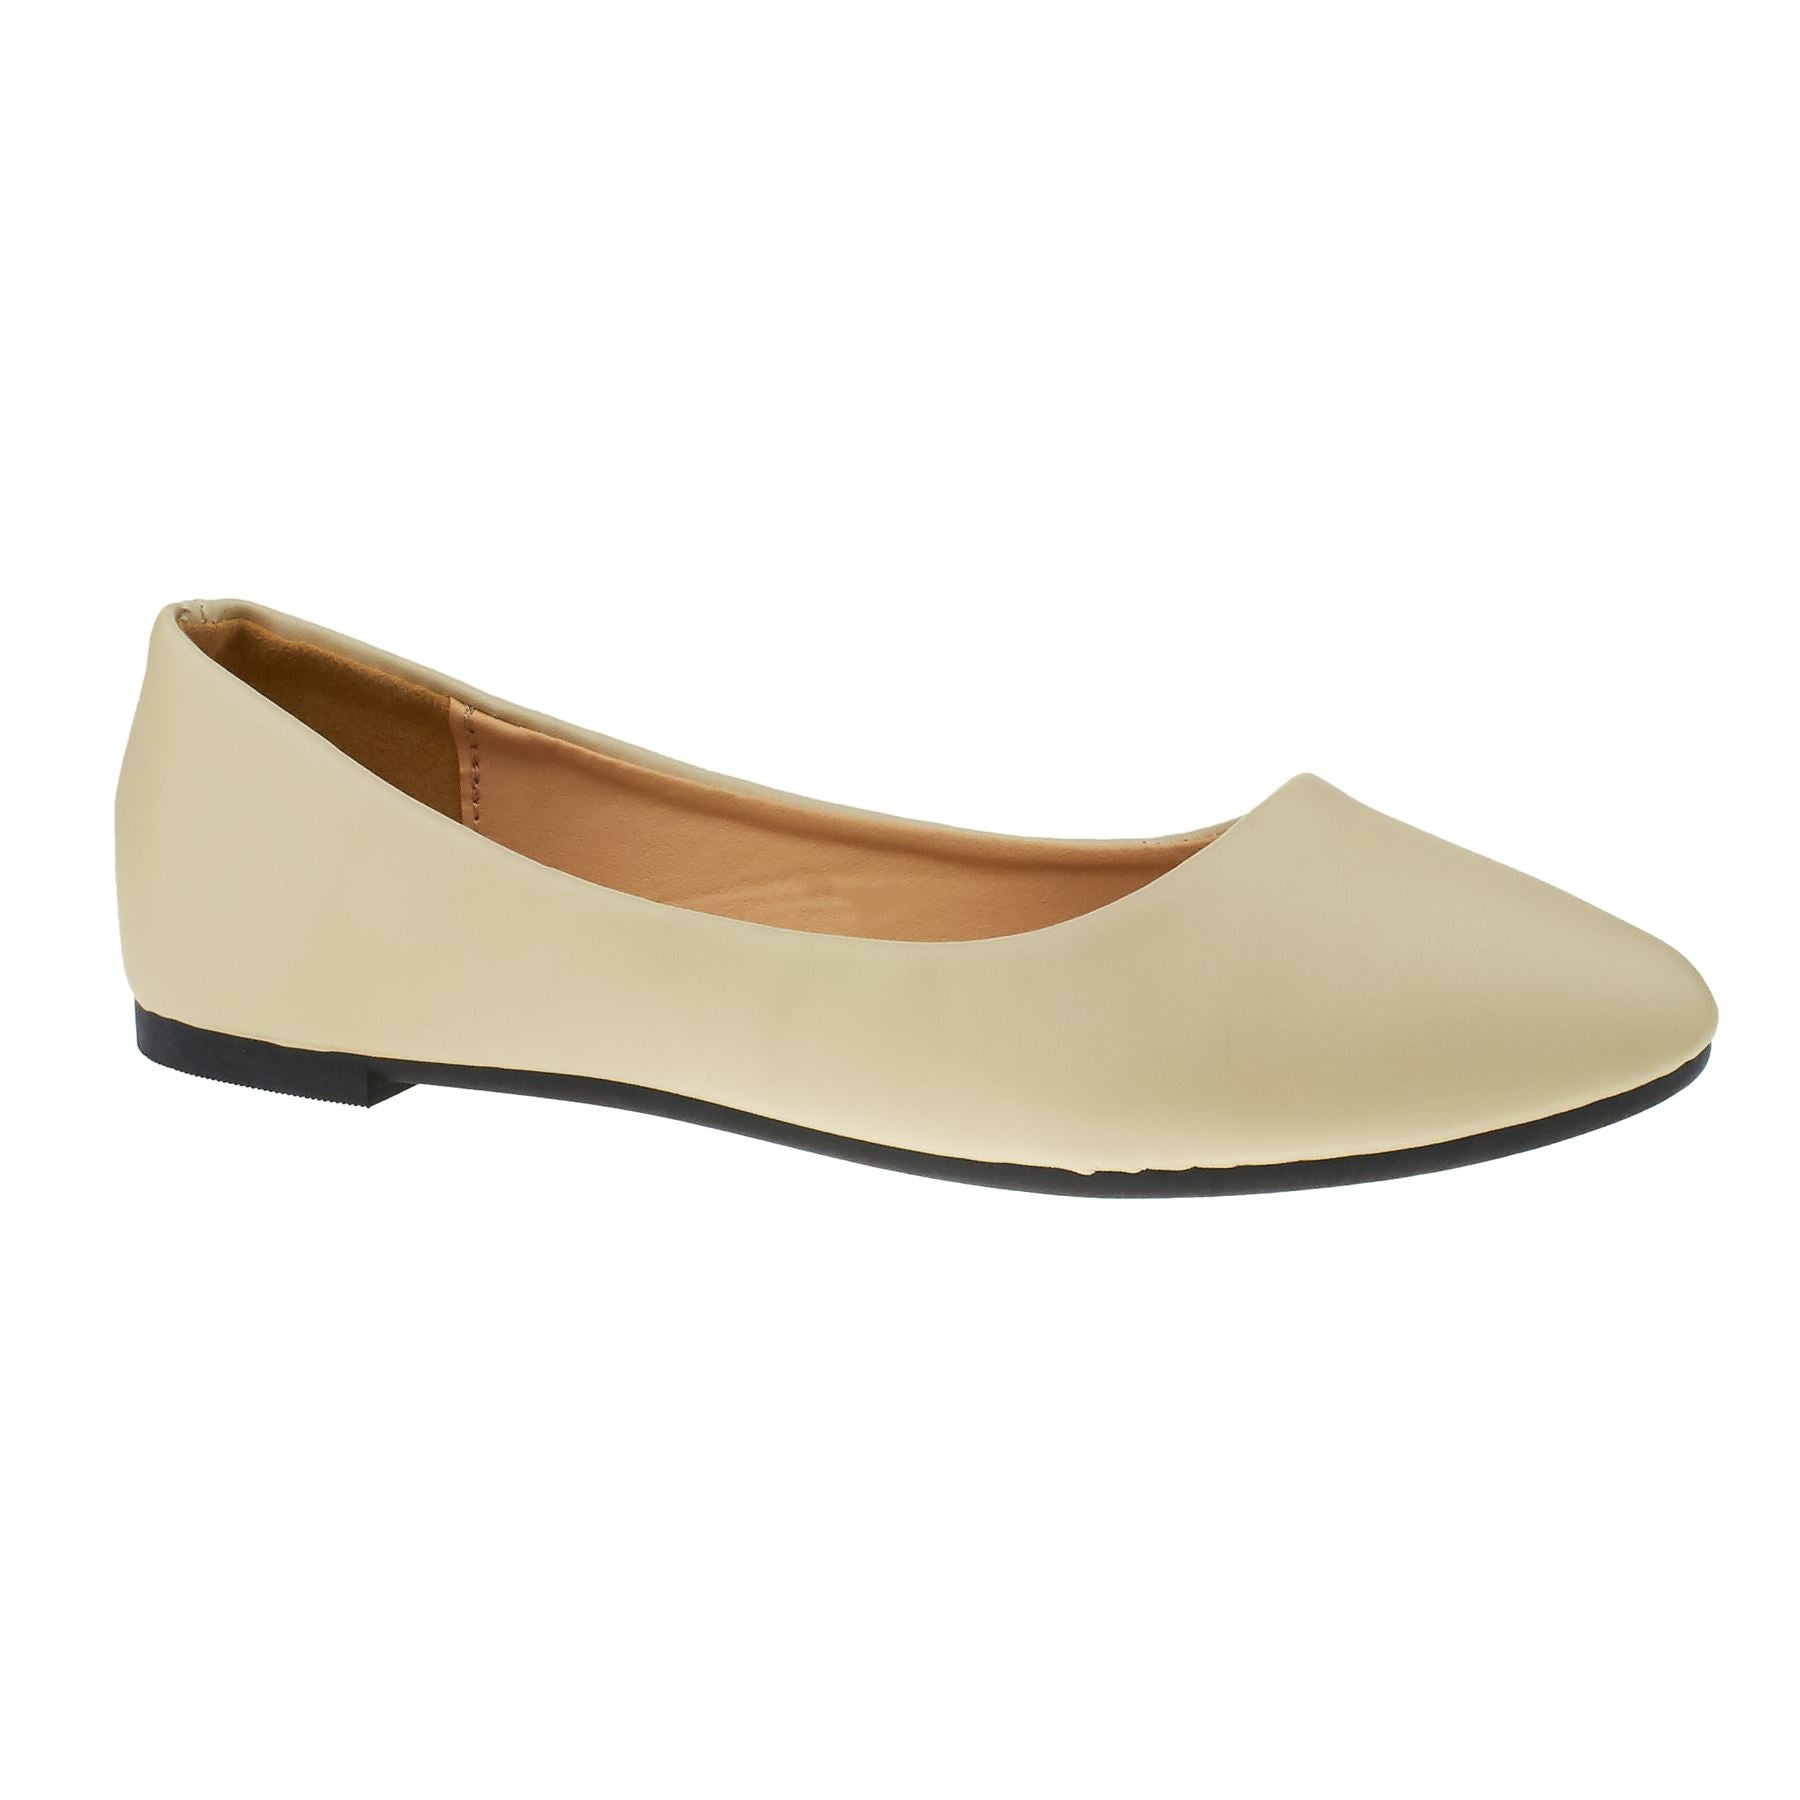 Apricot Faux Leather Ballet Flats